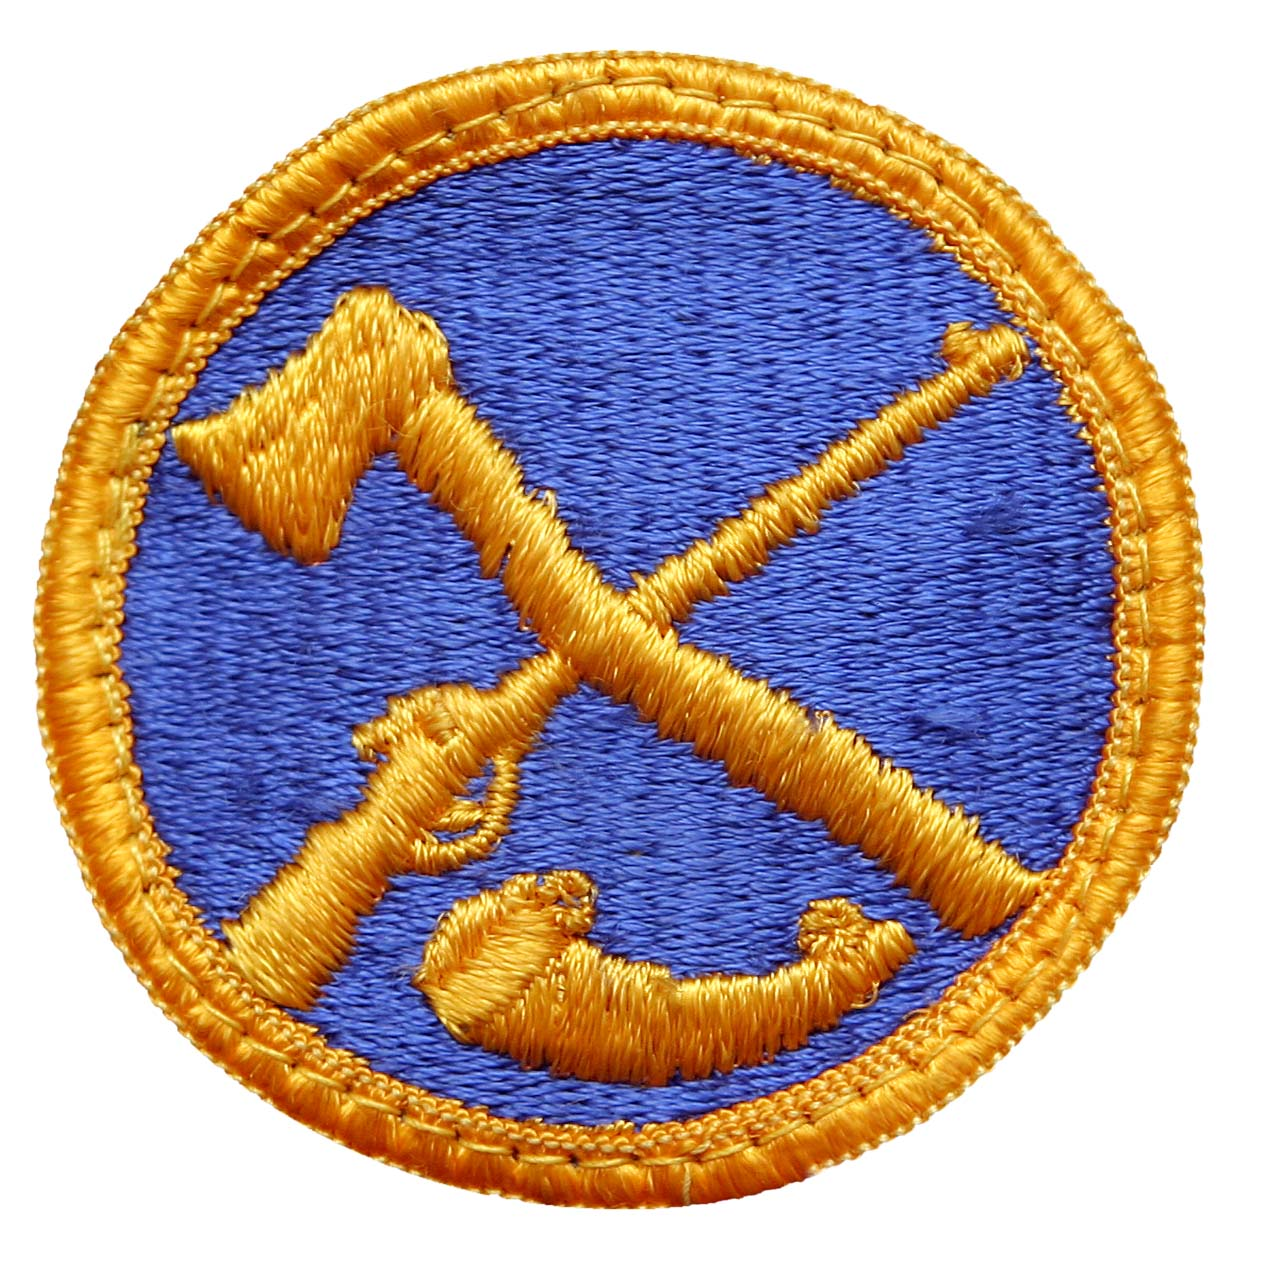 WVNG patch